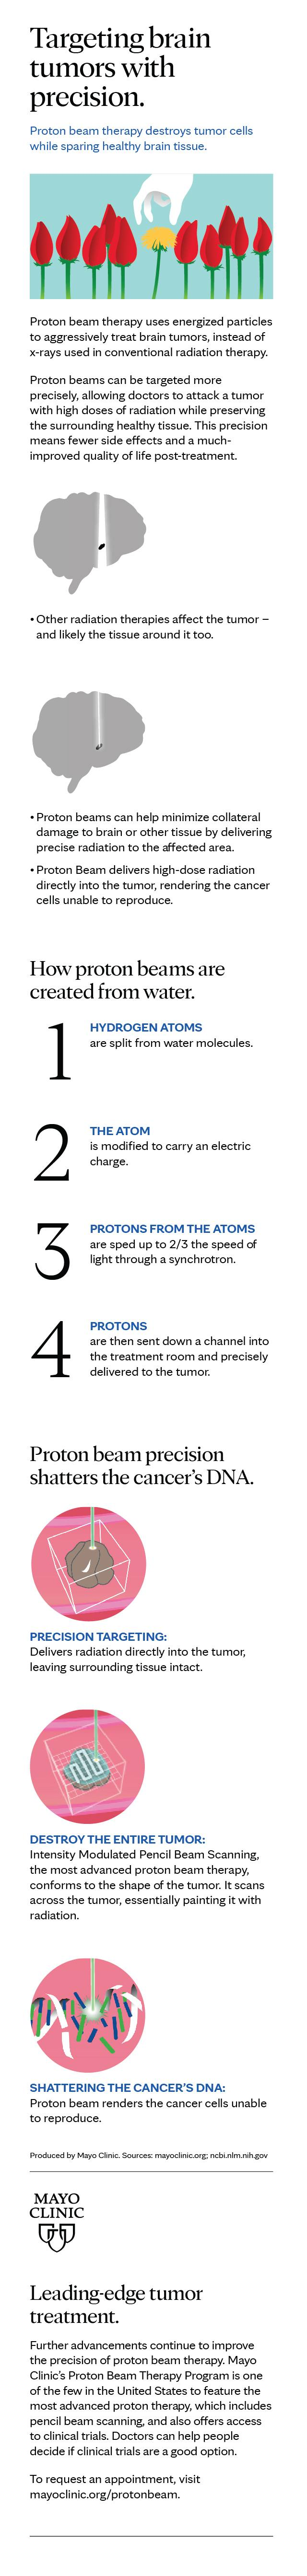 Infographic: Proton beam therapy for brain cancer – Mayo Clinic News